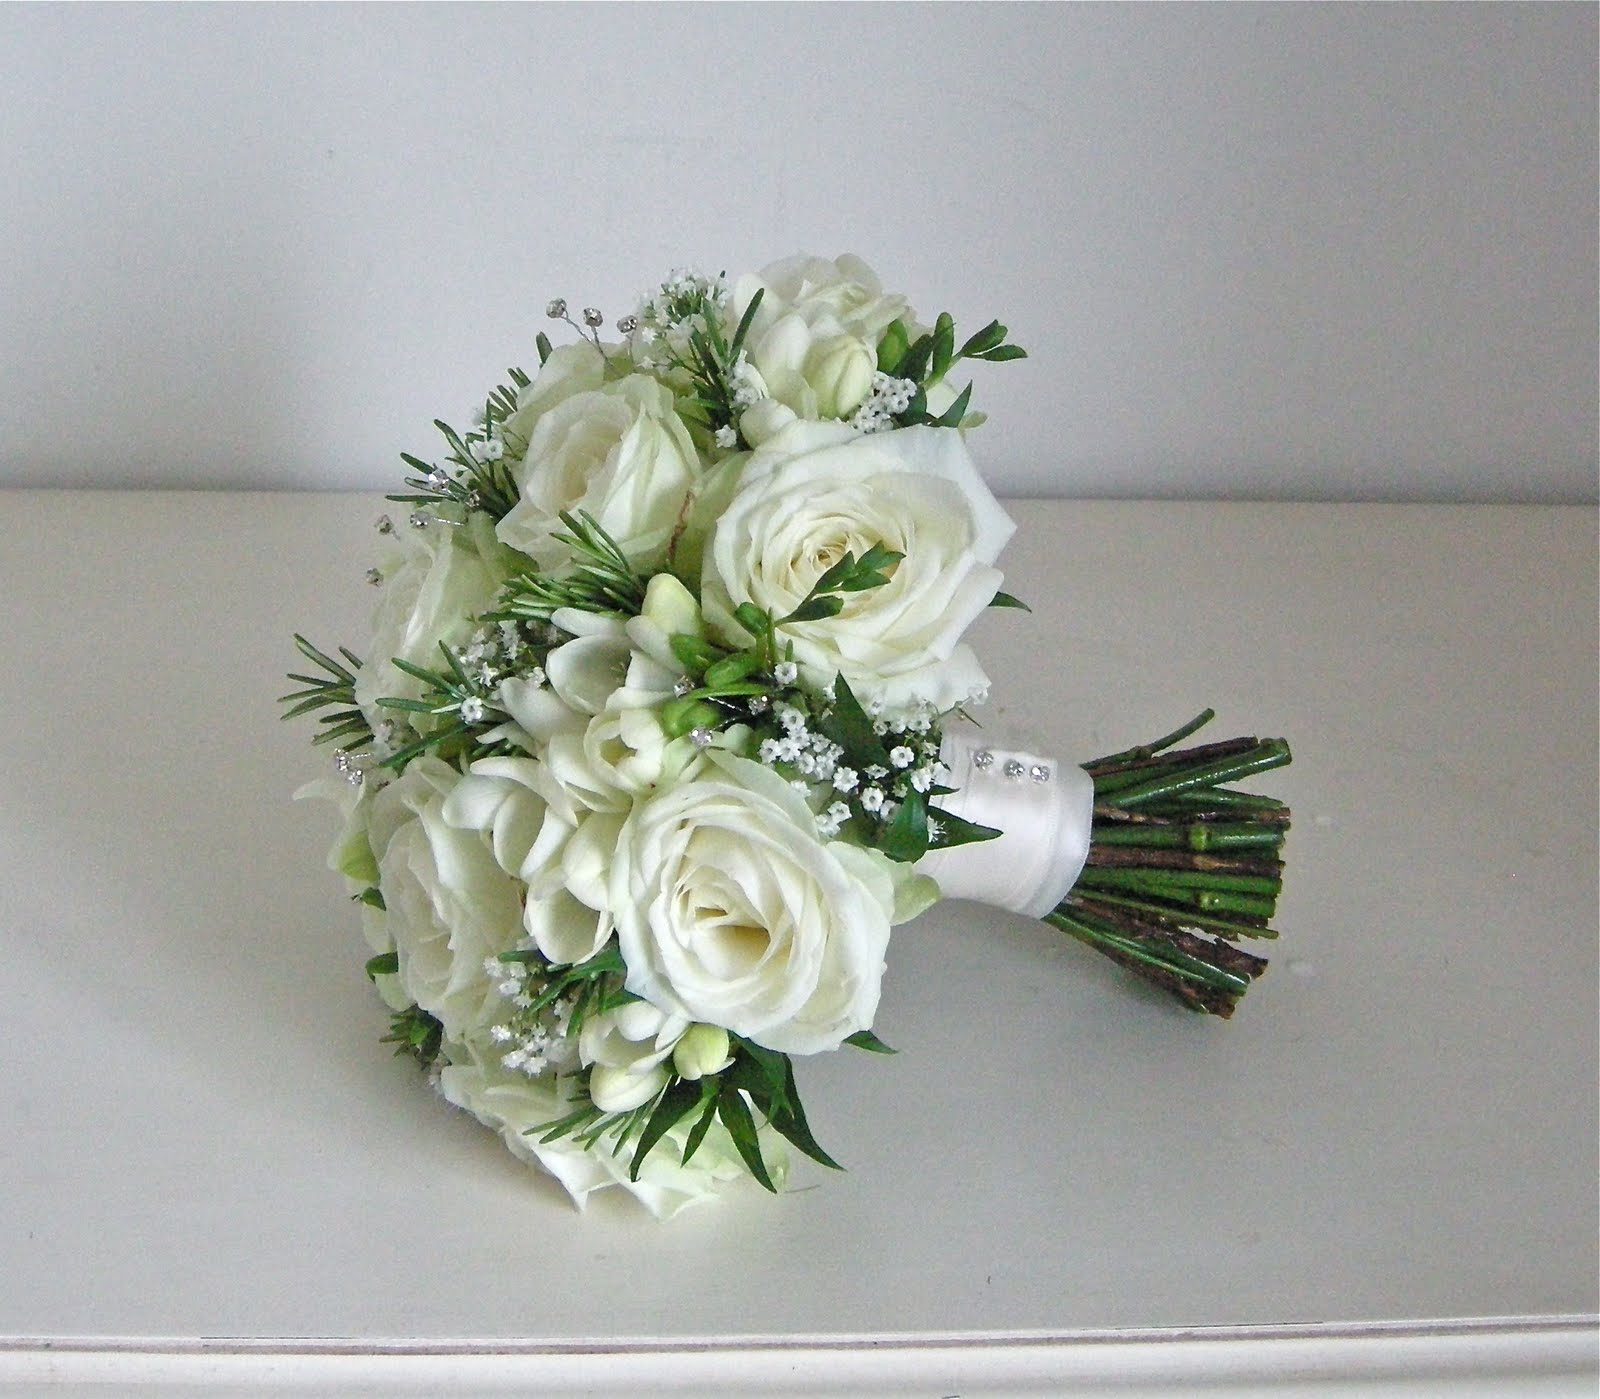 Wedding flowers blog august 2011 for Bouquet of flowers for weddings